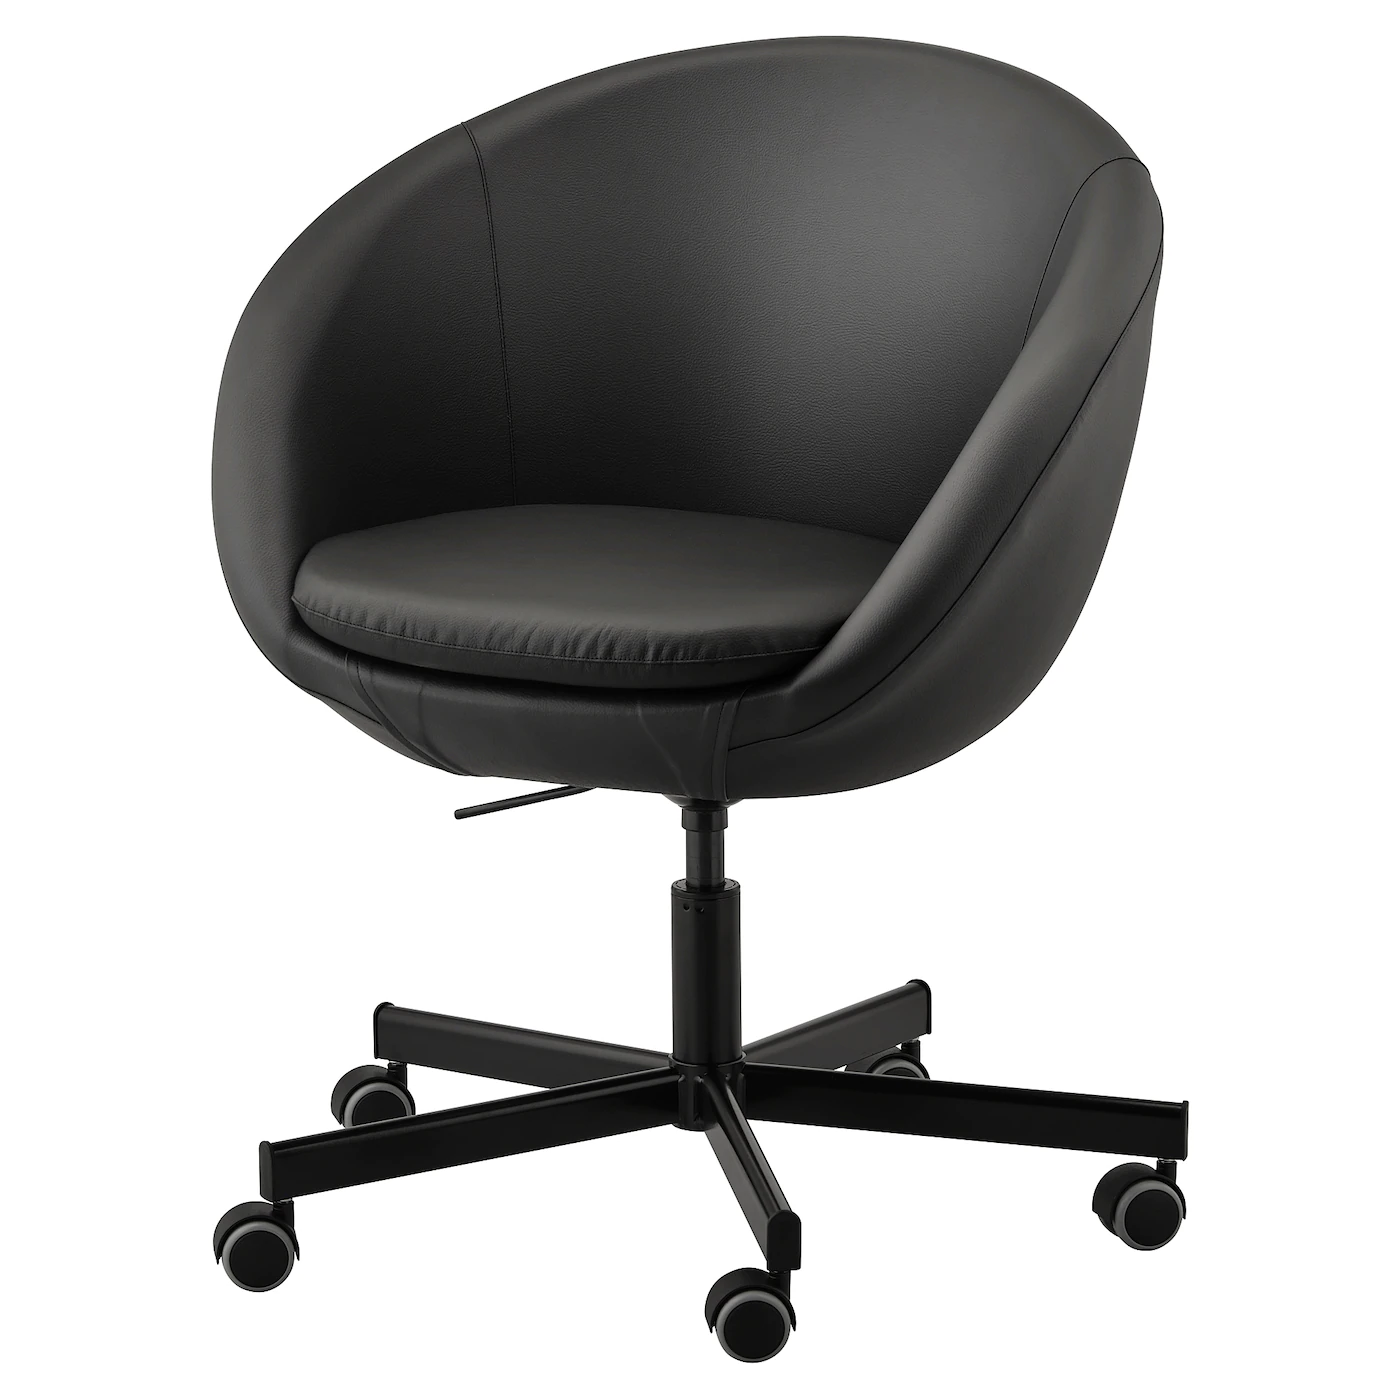 Details about IKEA SKRUVSTA Swivel chair office chair